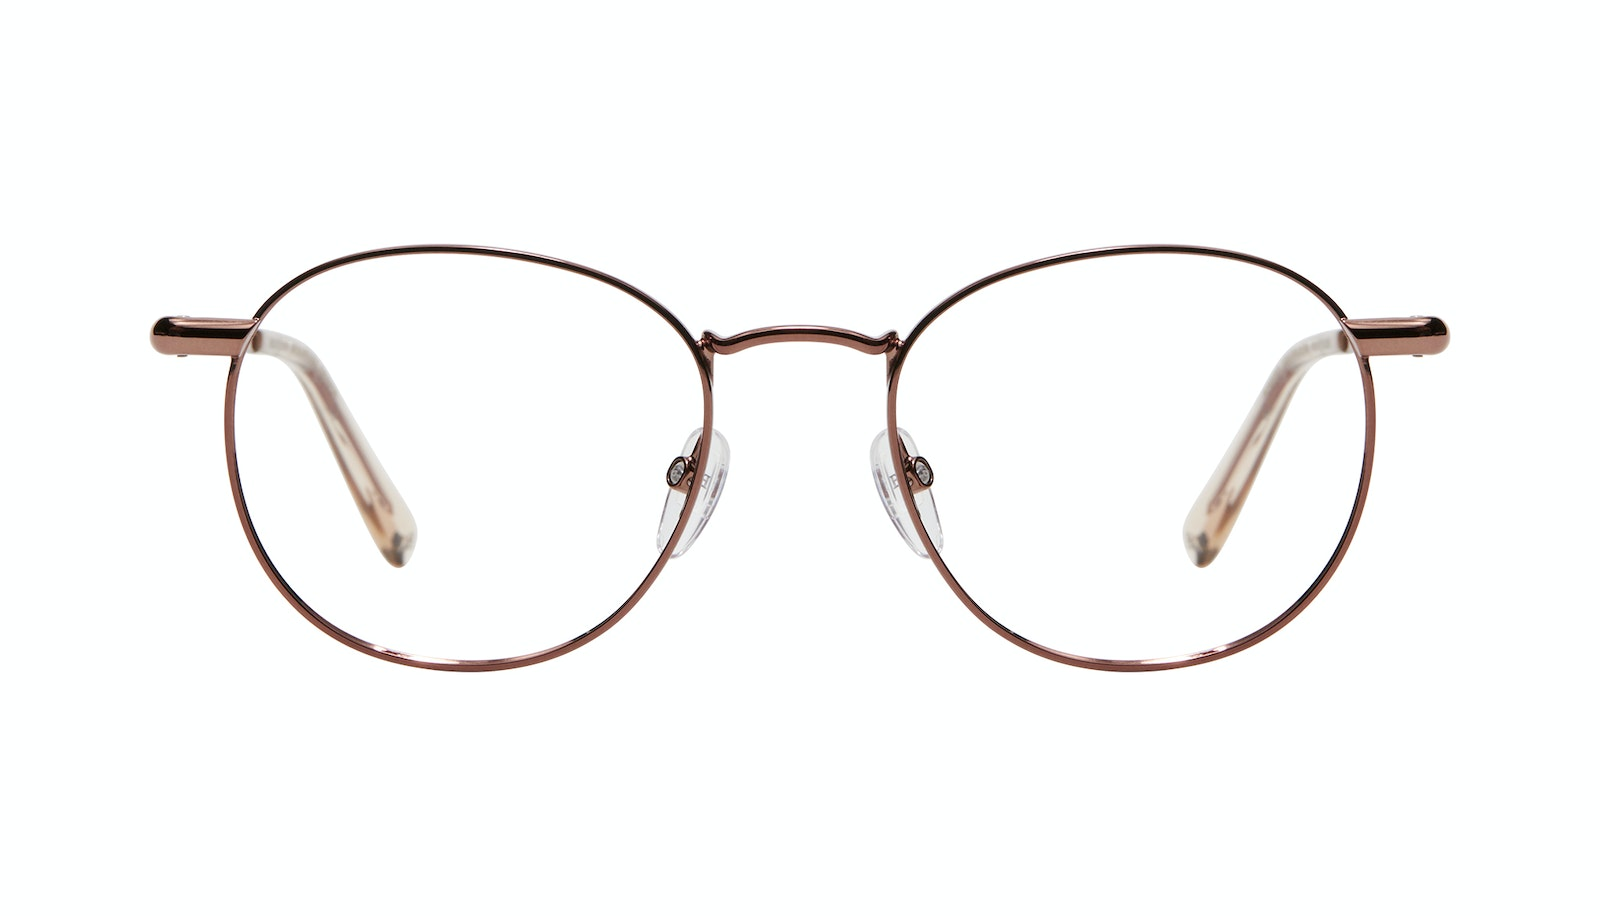 Affordable Fashion Glasses Round Eyeglasses Men Women Divine L Copper